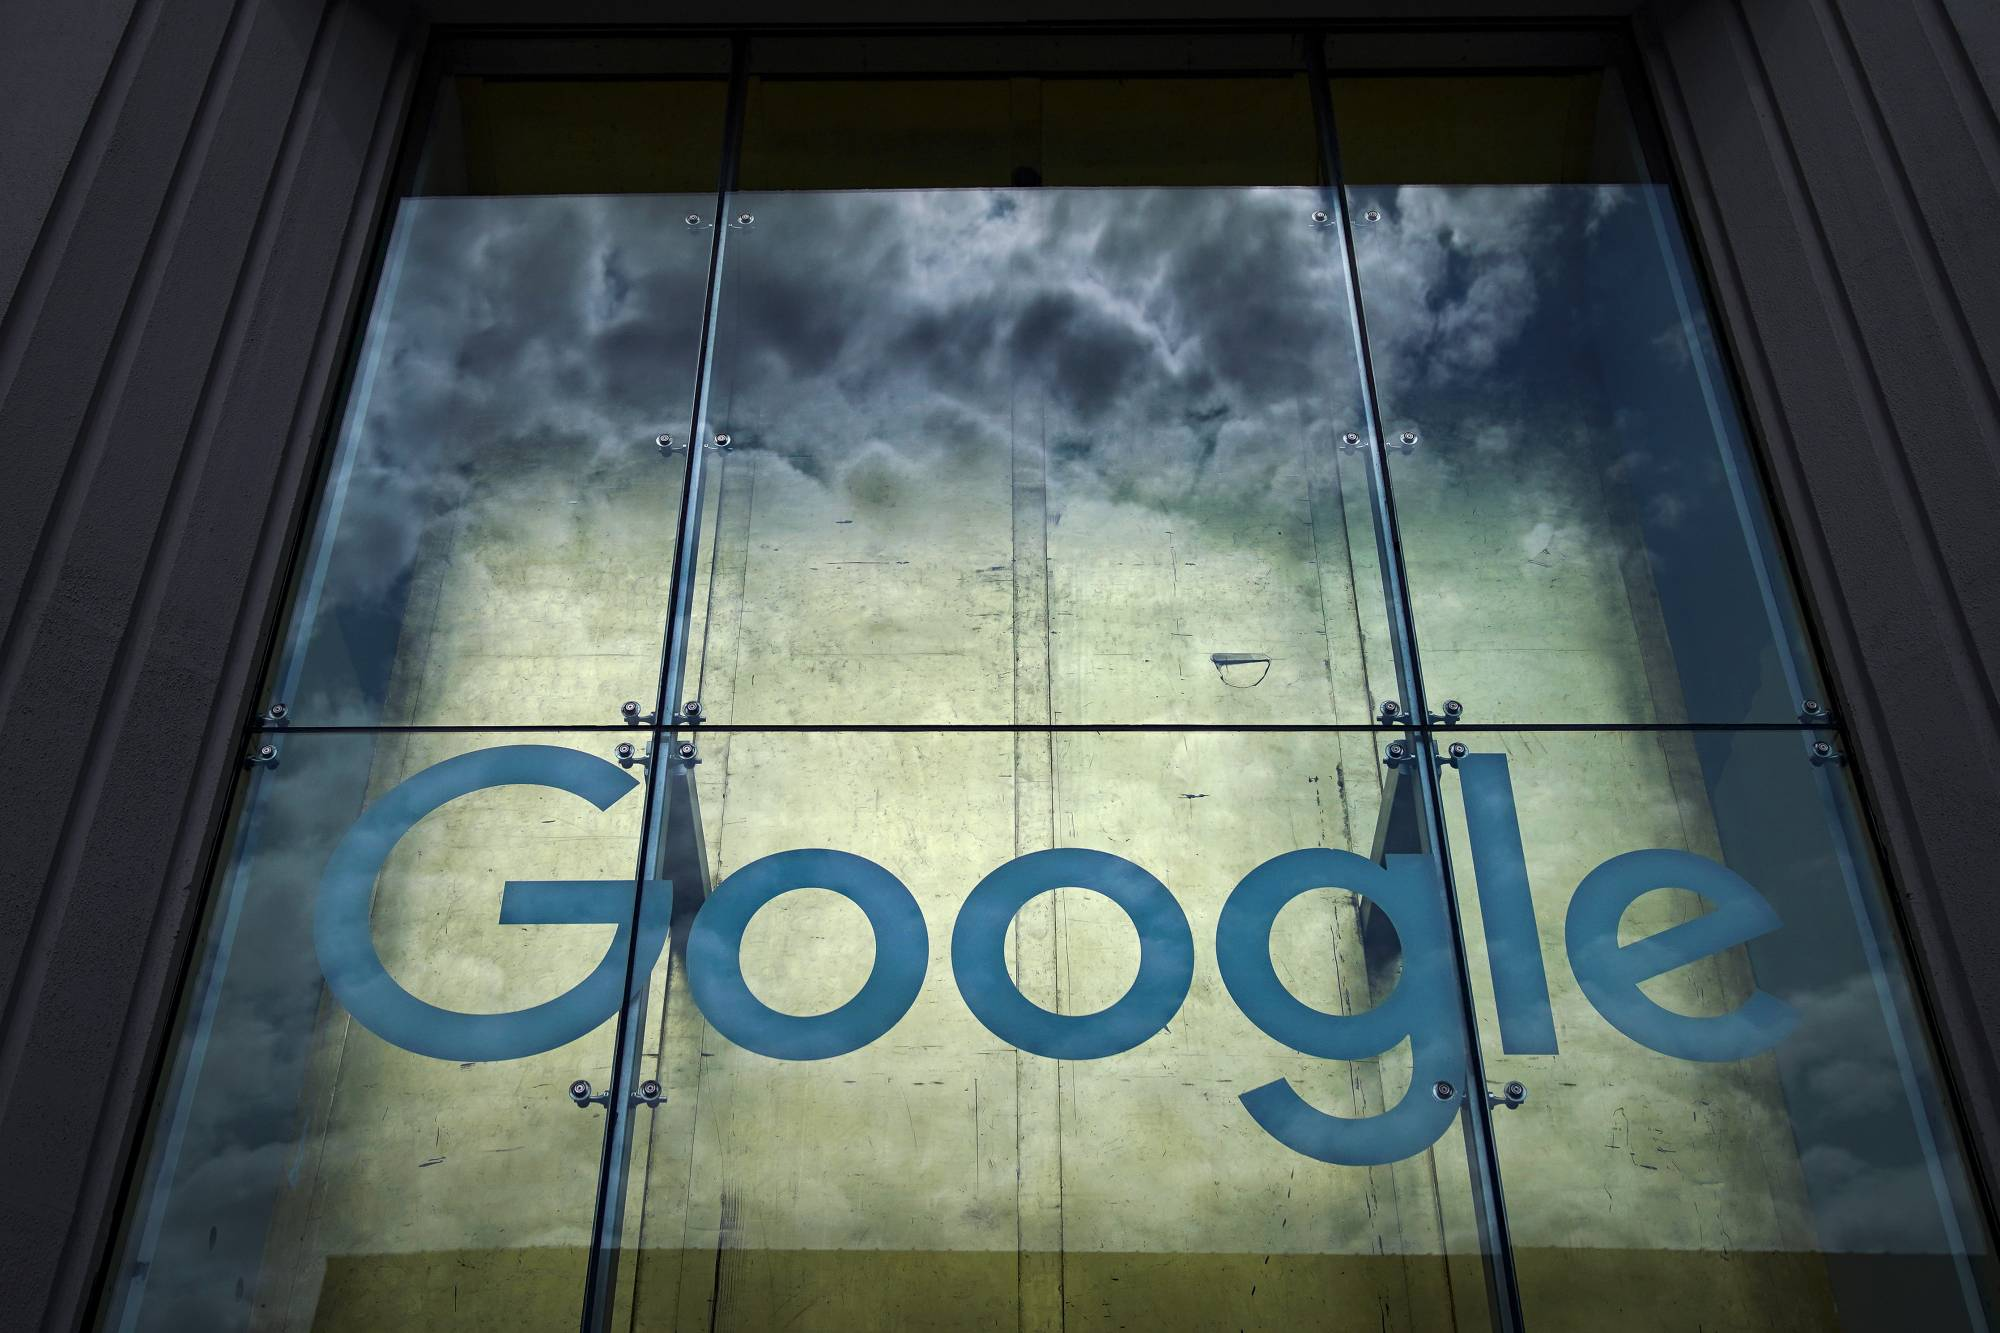 Google's plans to bolster its cloud computing business by buying data analytics startup Looker for $2.6 billion, marking one of the search giant's largest acquisitions.